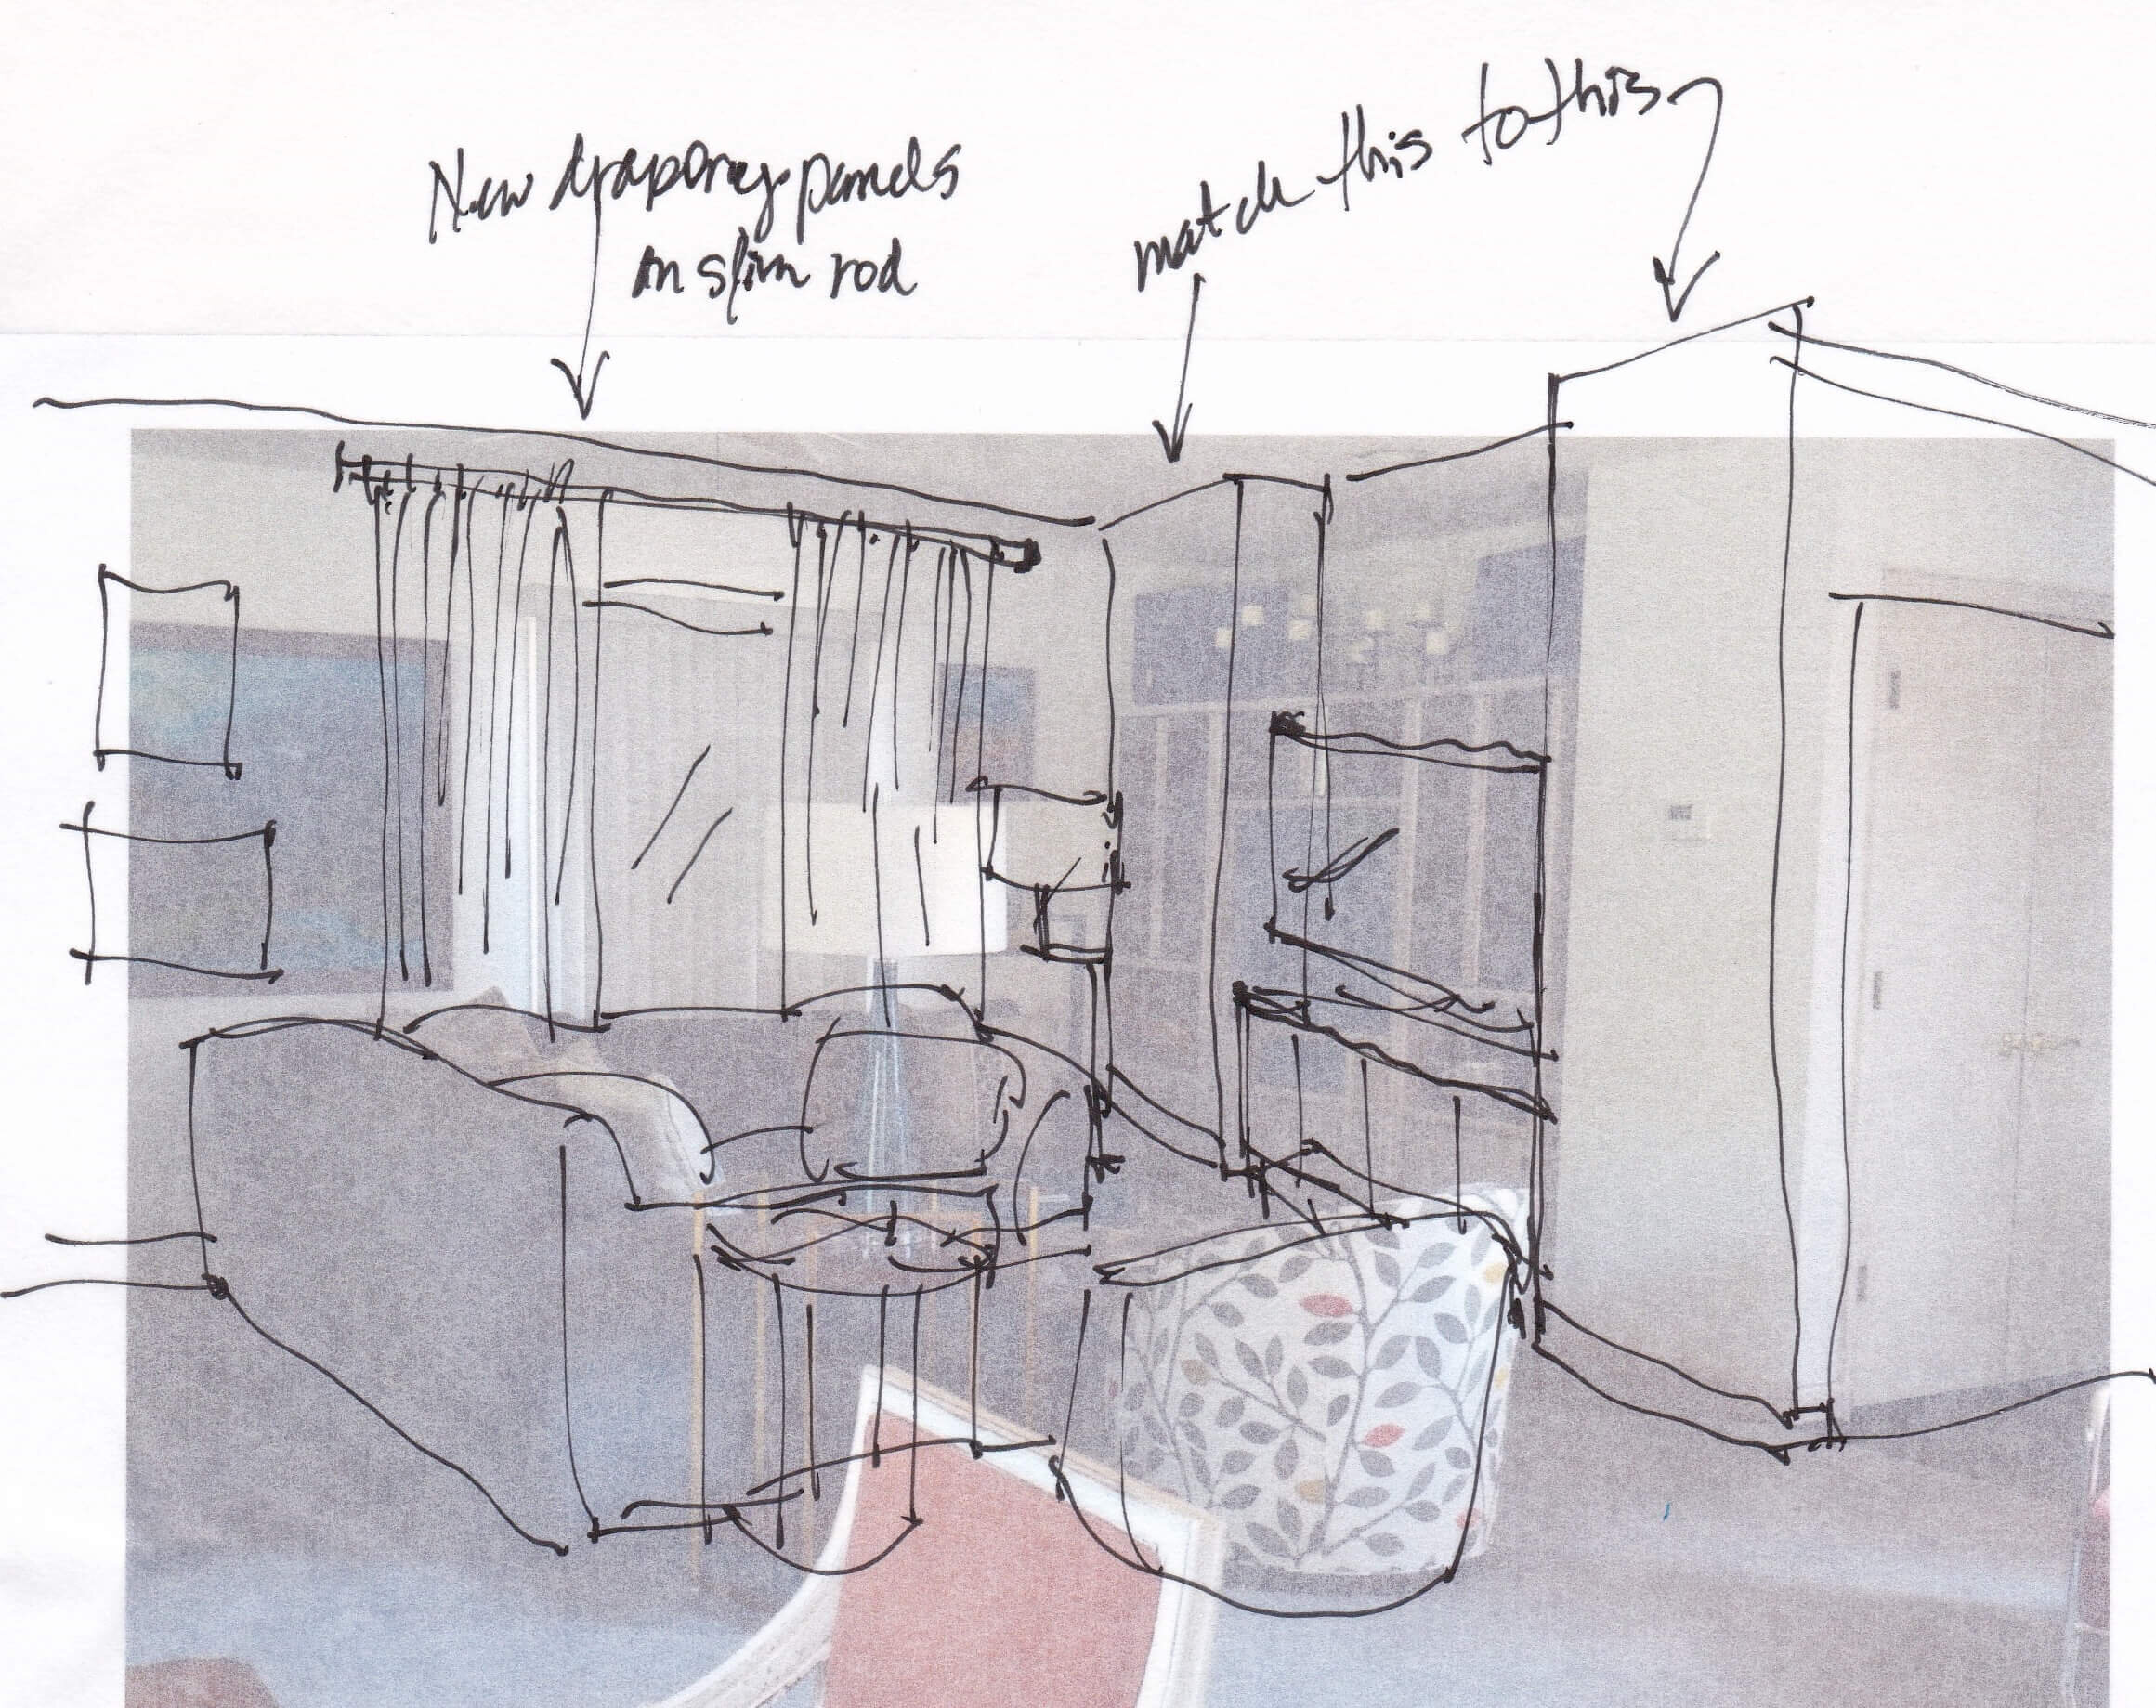 Design sketch showing recommendation for tv wall and window treatment. #designconsultation #interiorsketch #designsketch